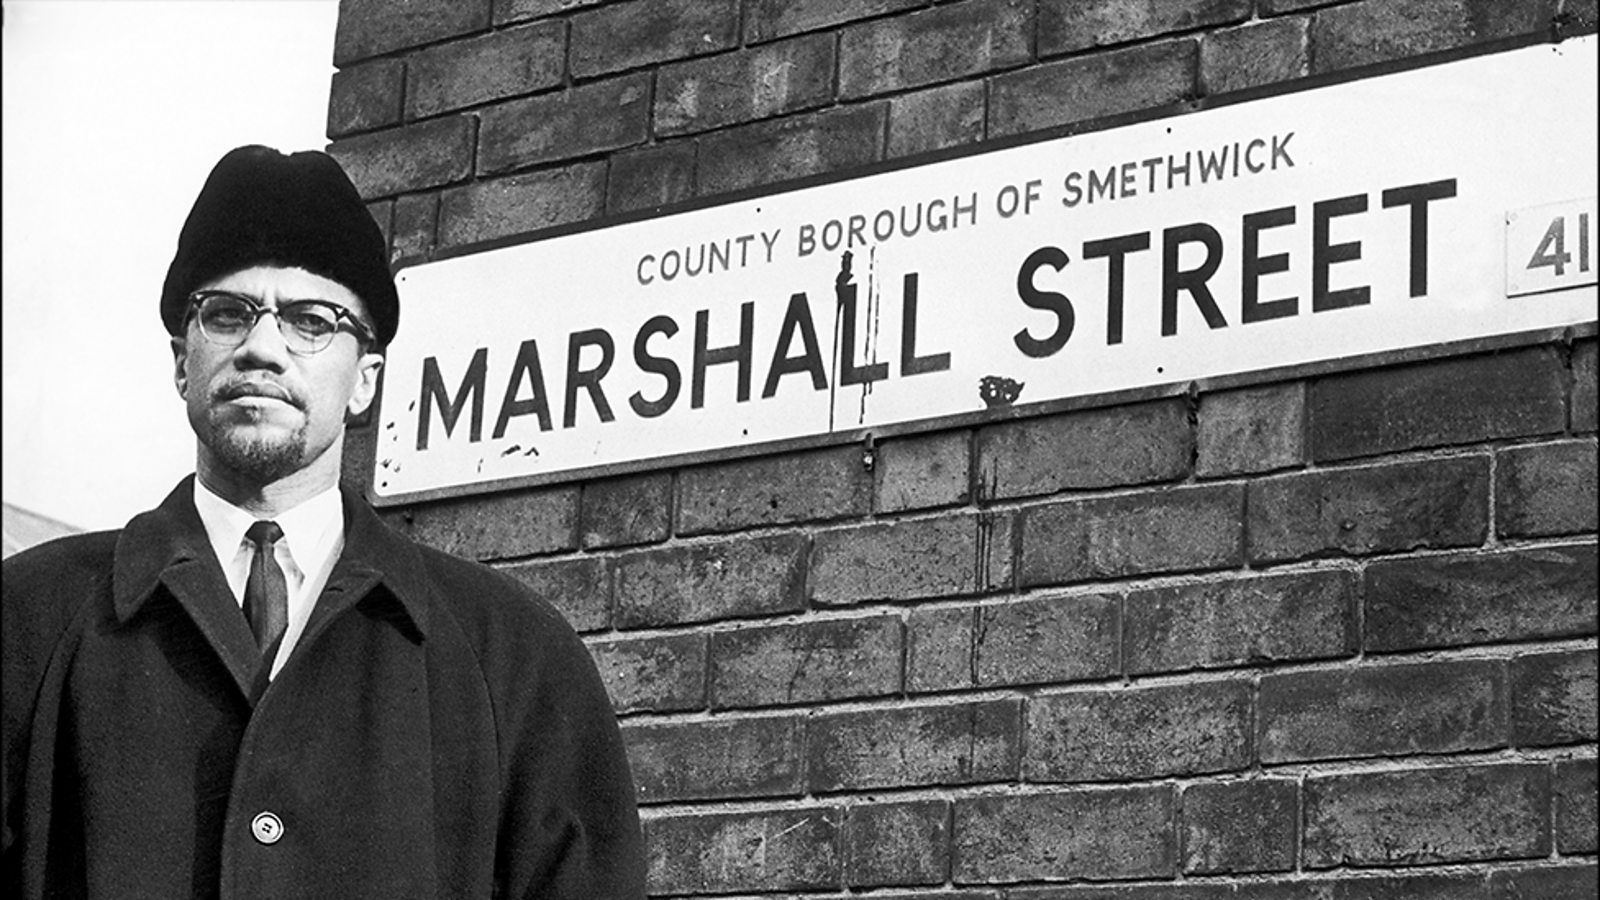 Malcolm X: From civil rights to Smethwick